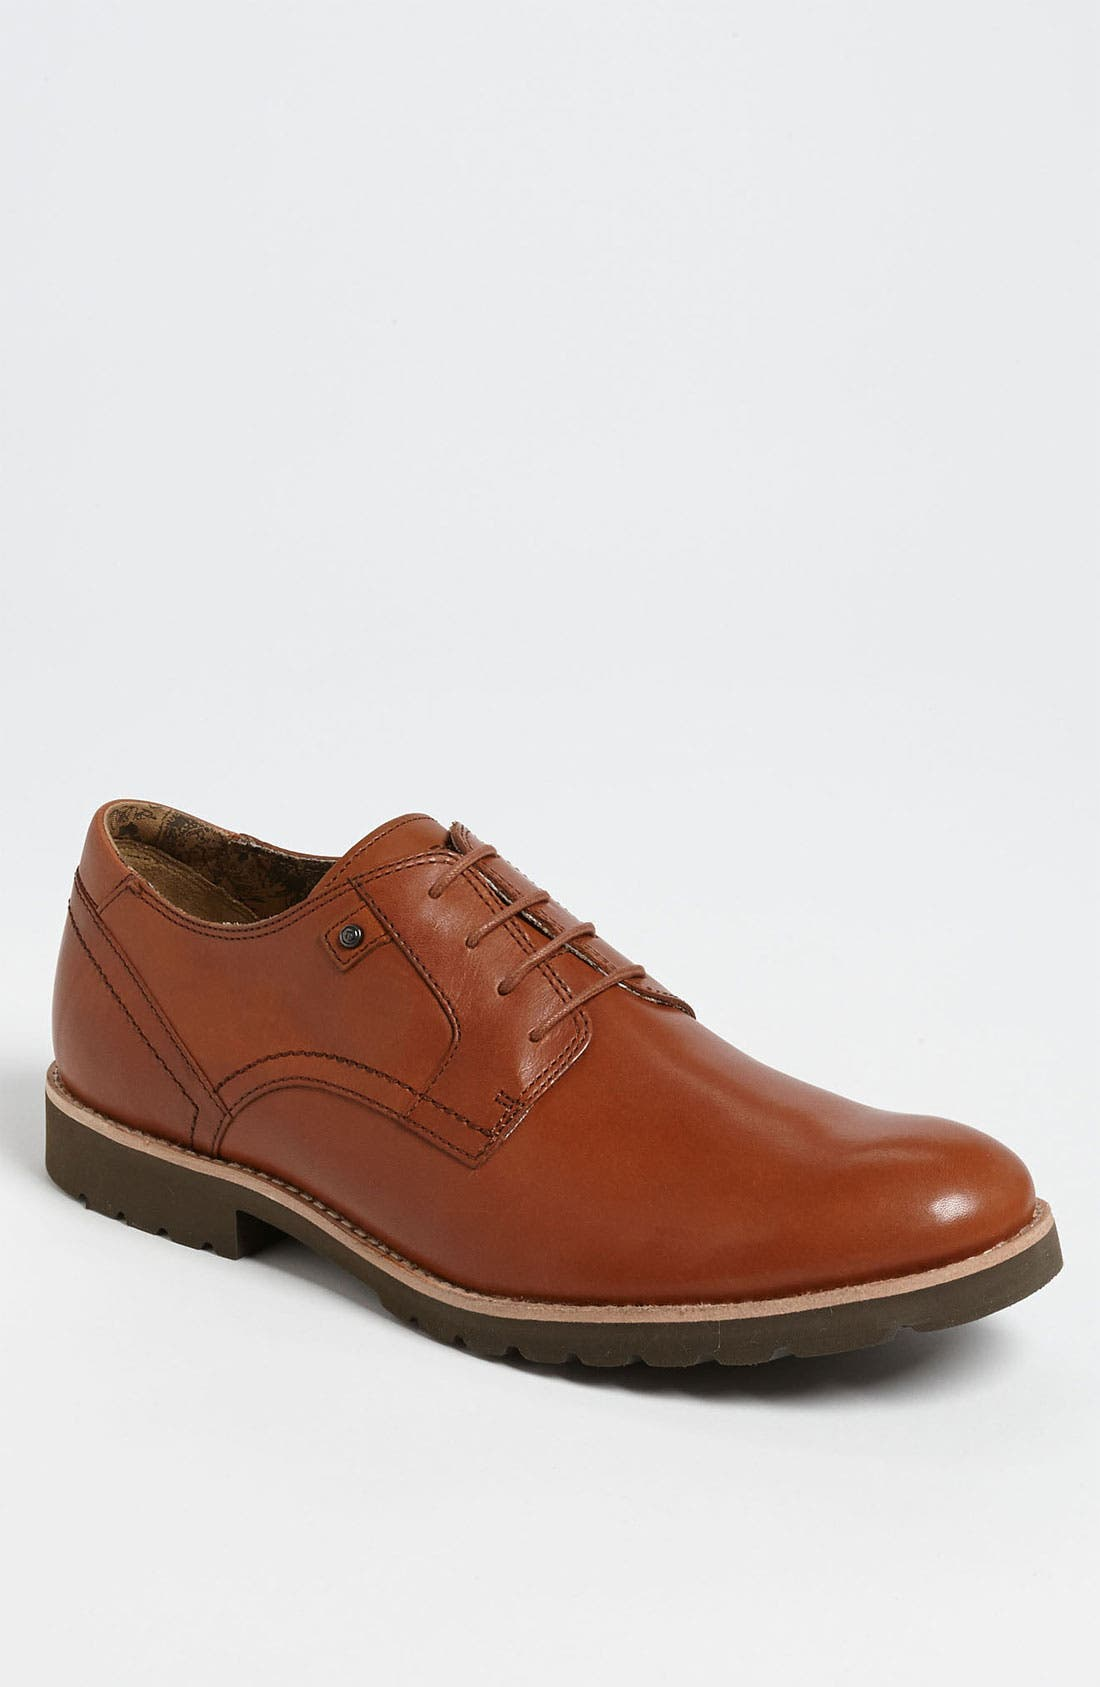 Main Image - Rockport 'Ledge Hill' Plain Toe Derby